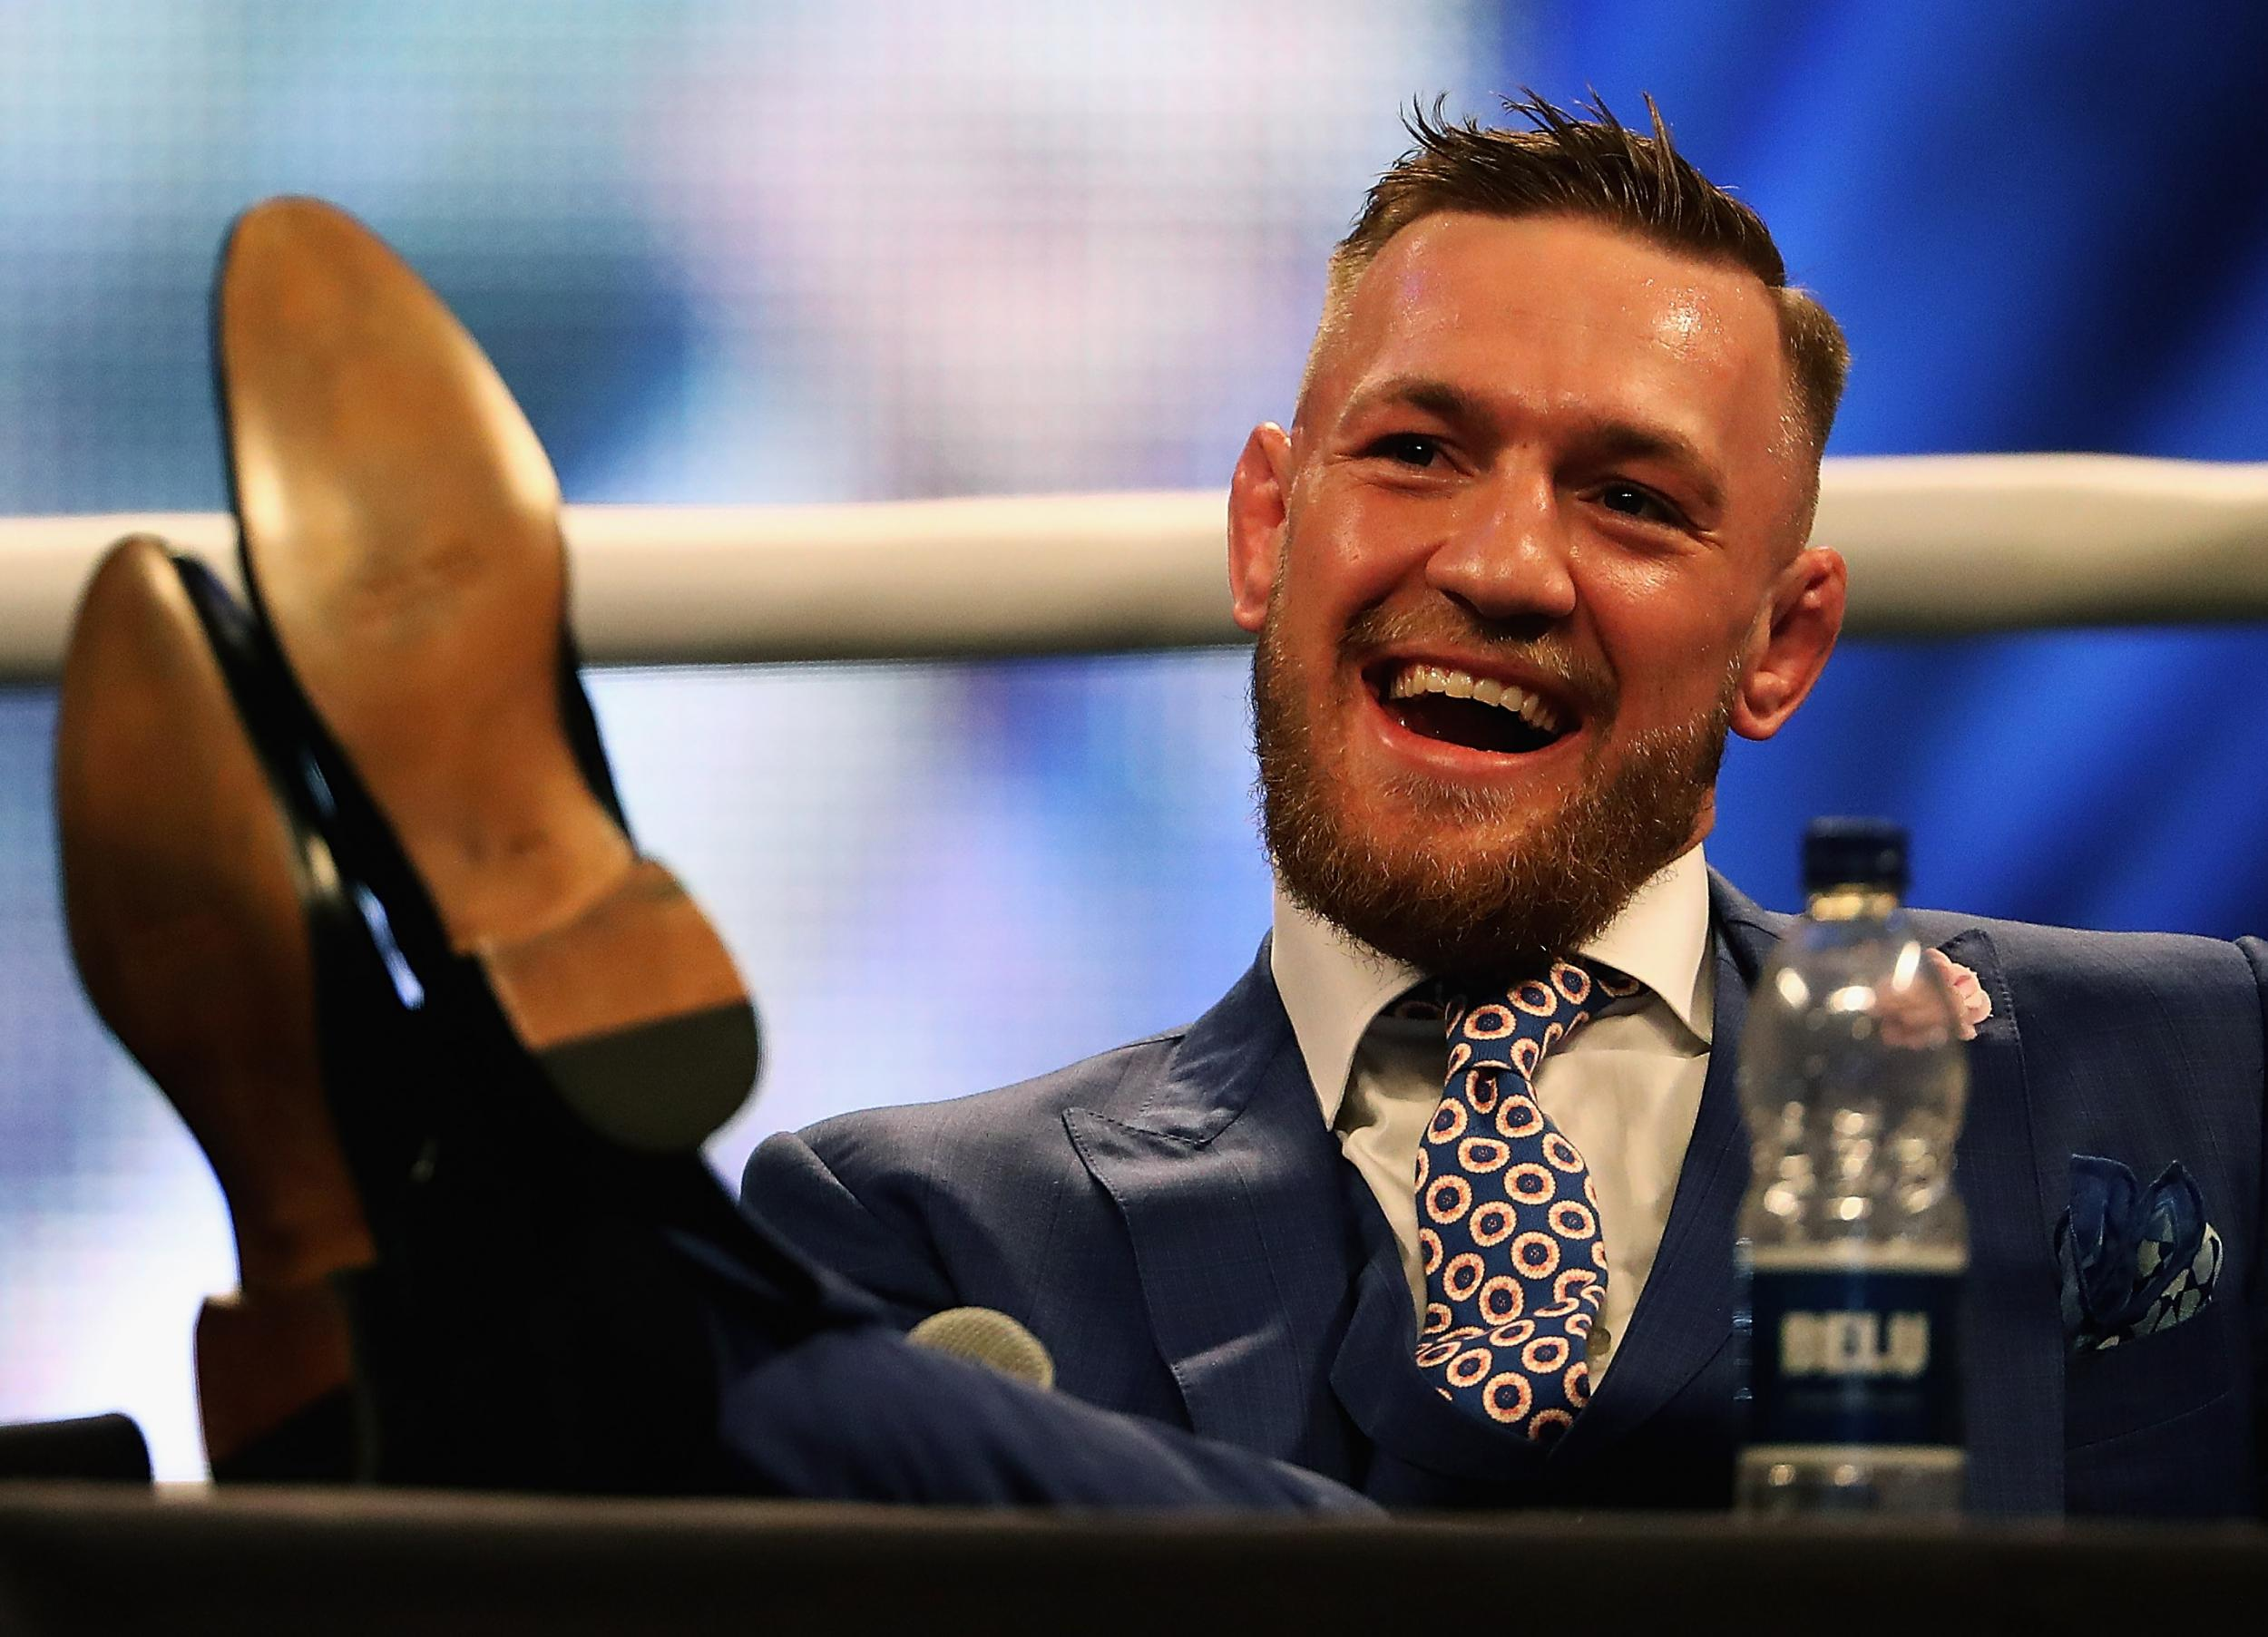 conor mcgregor - photo #12